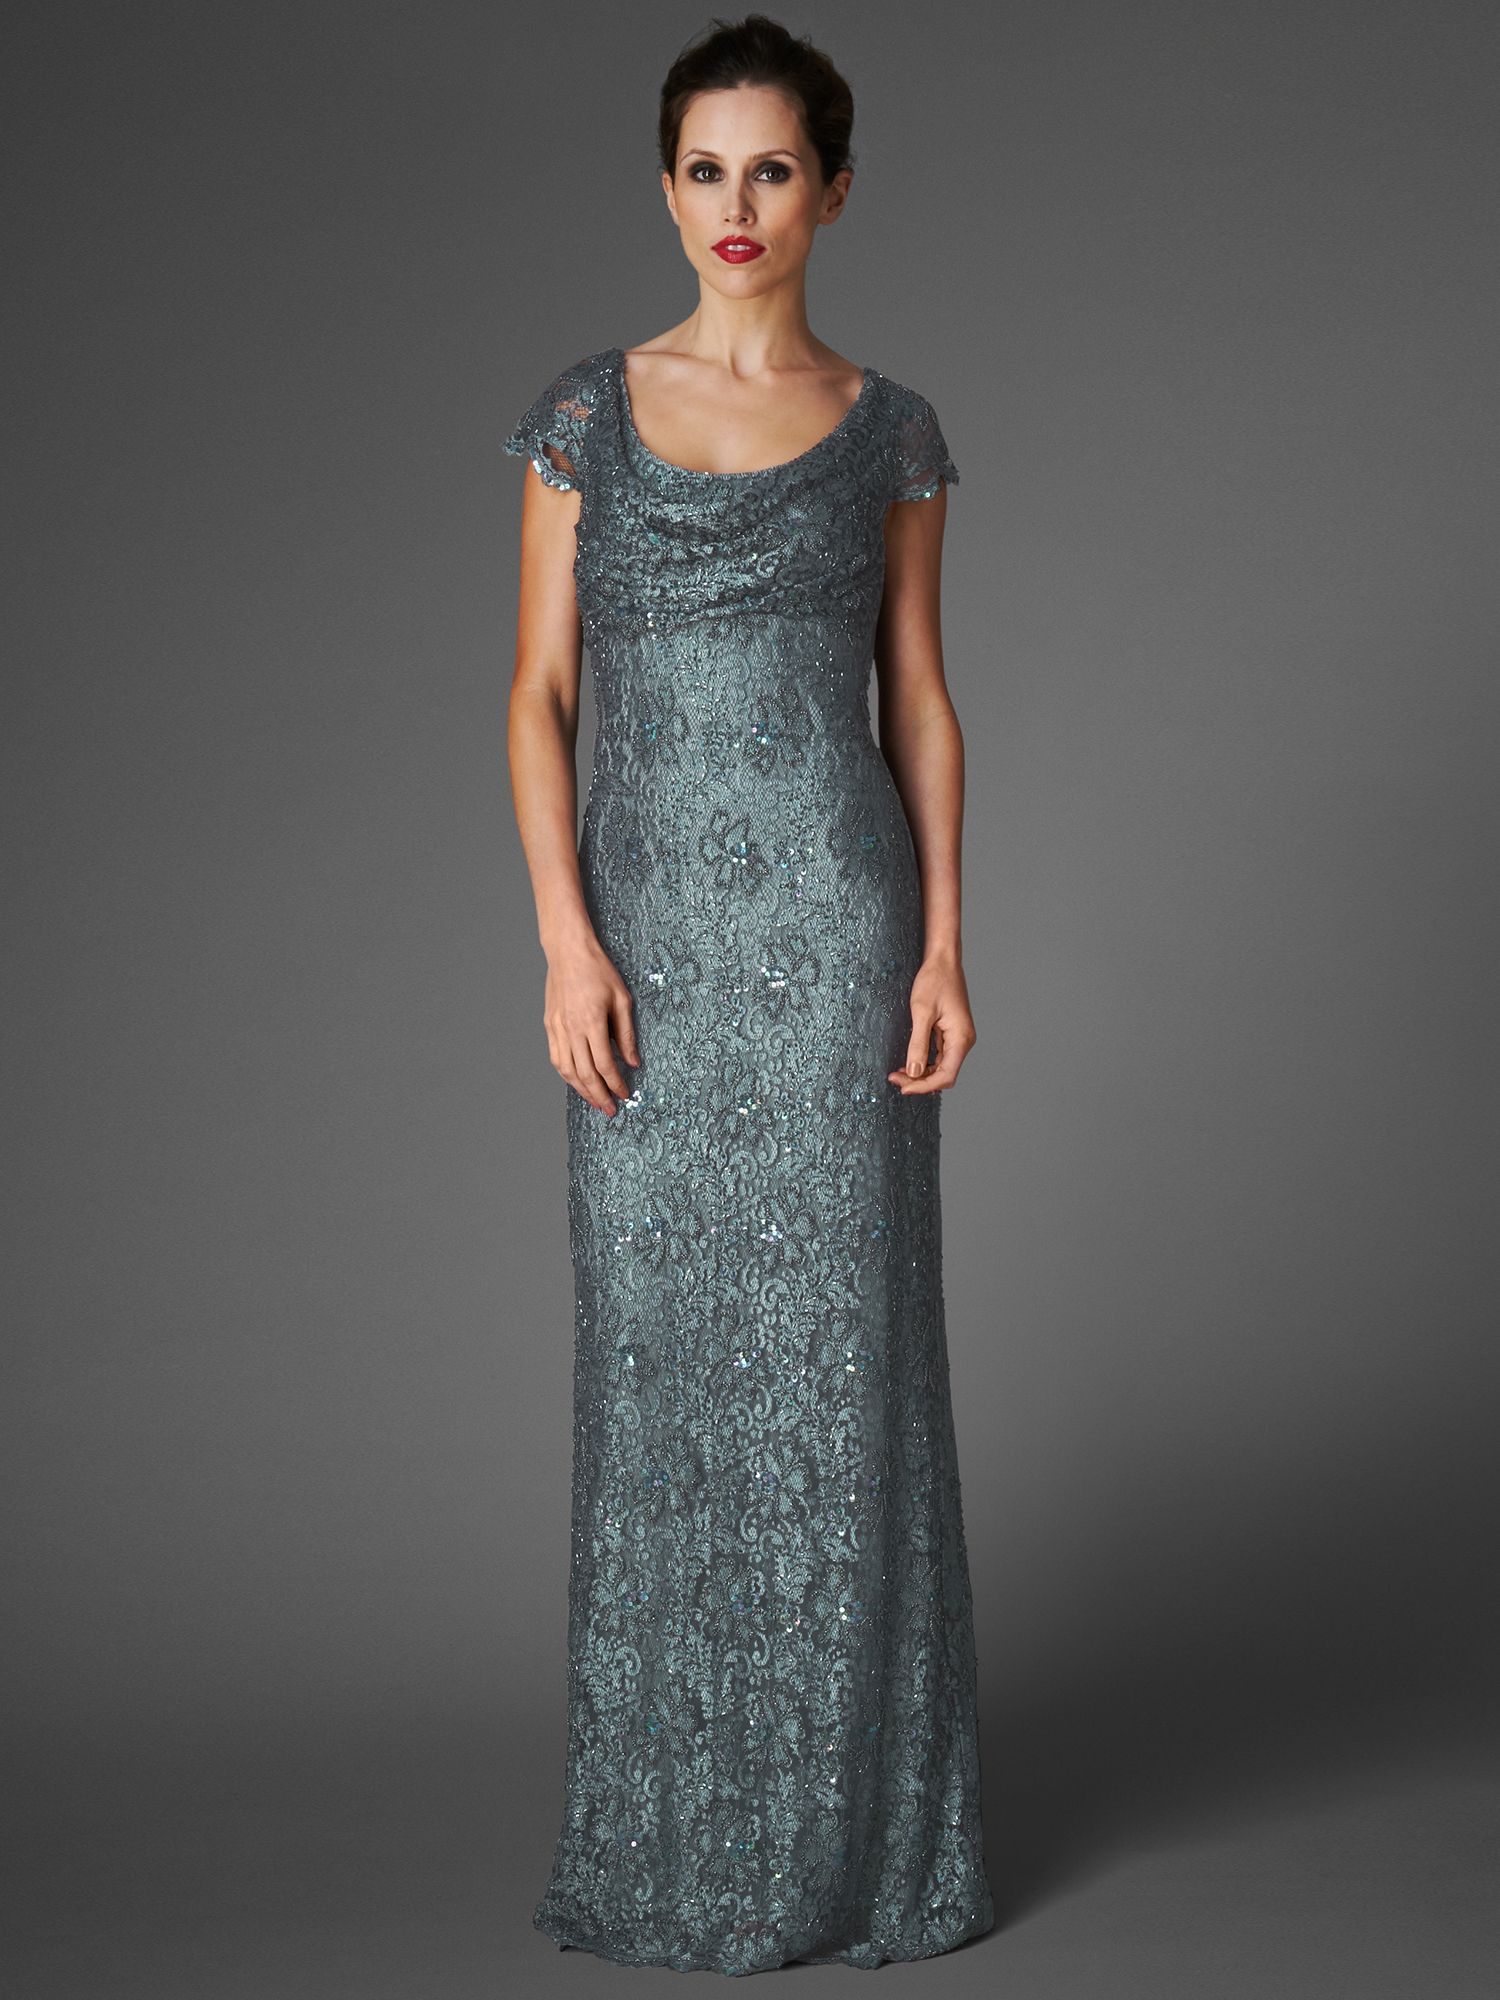 Pippa embellished full length dress